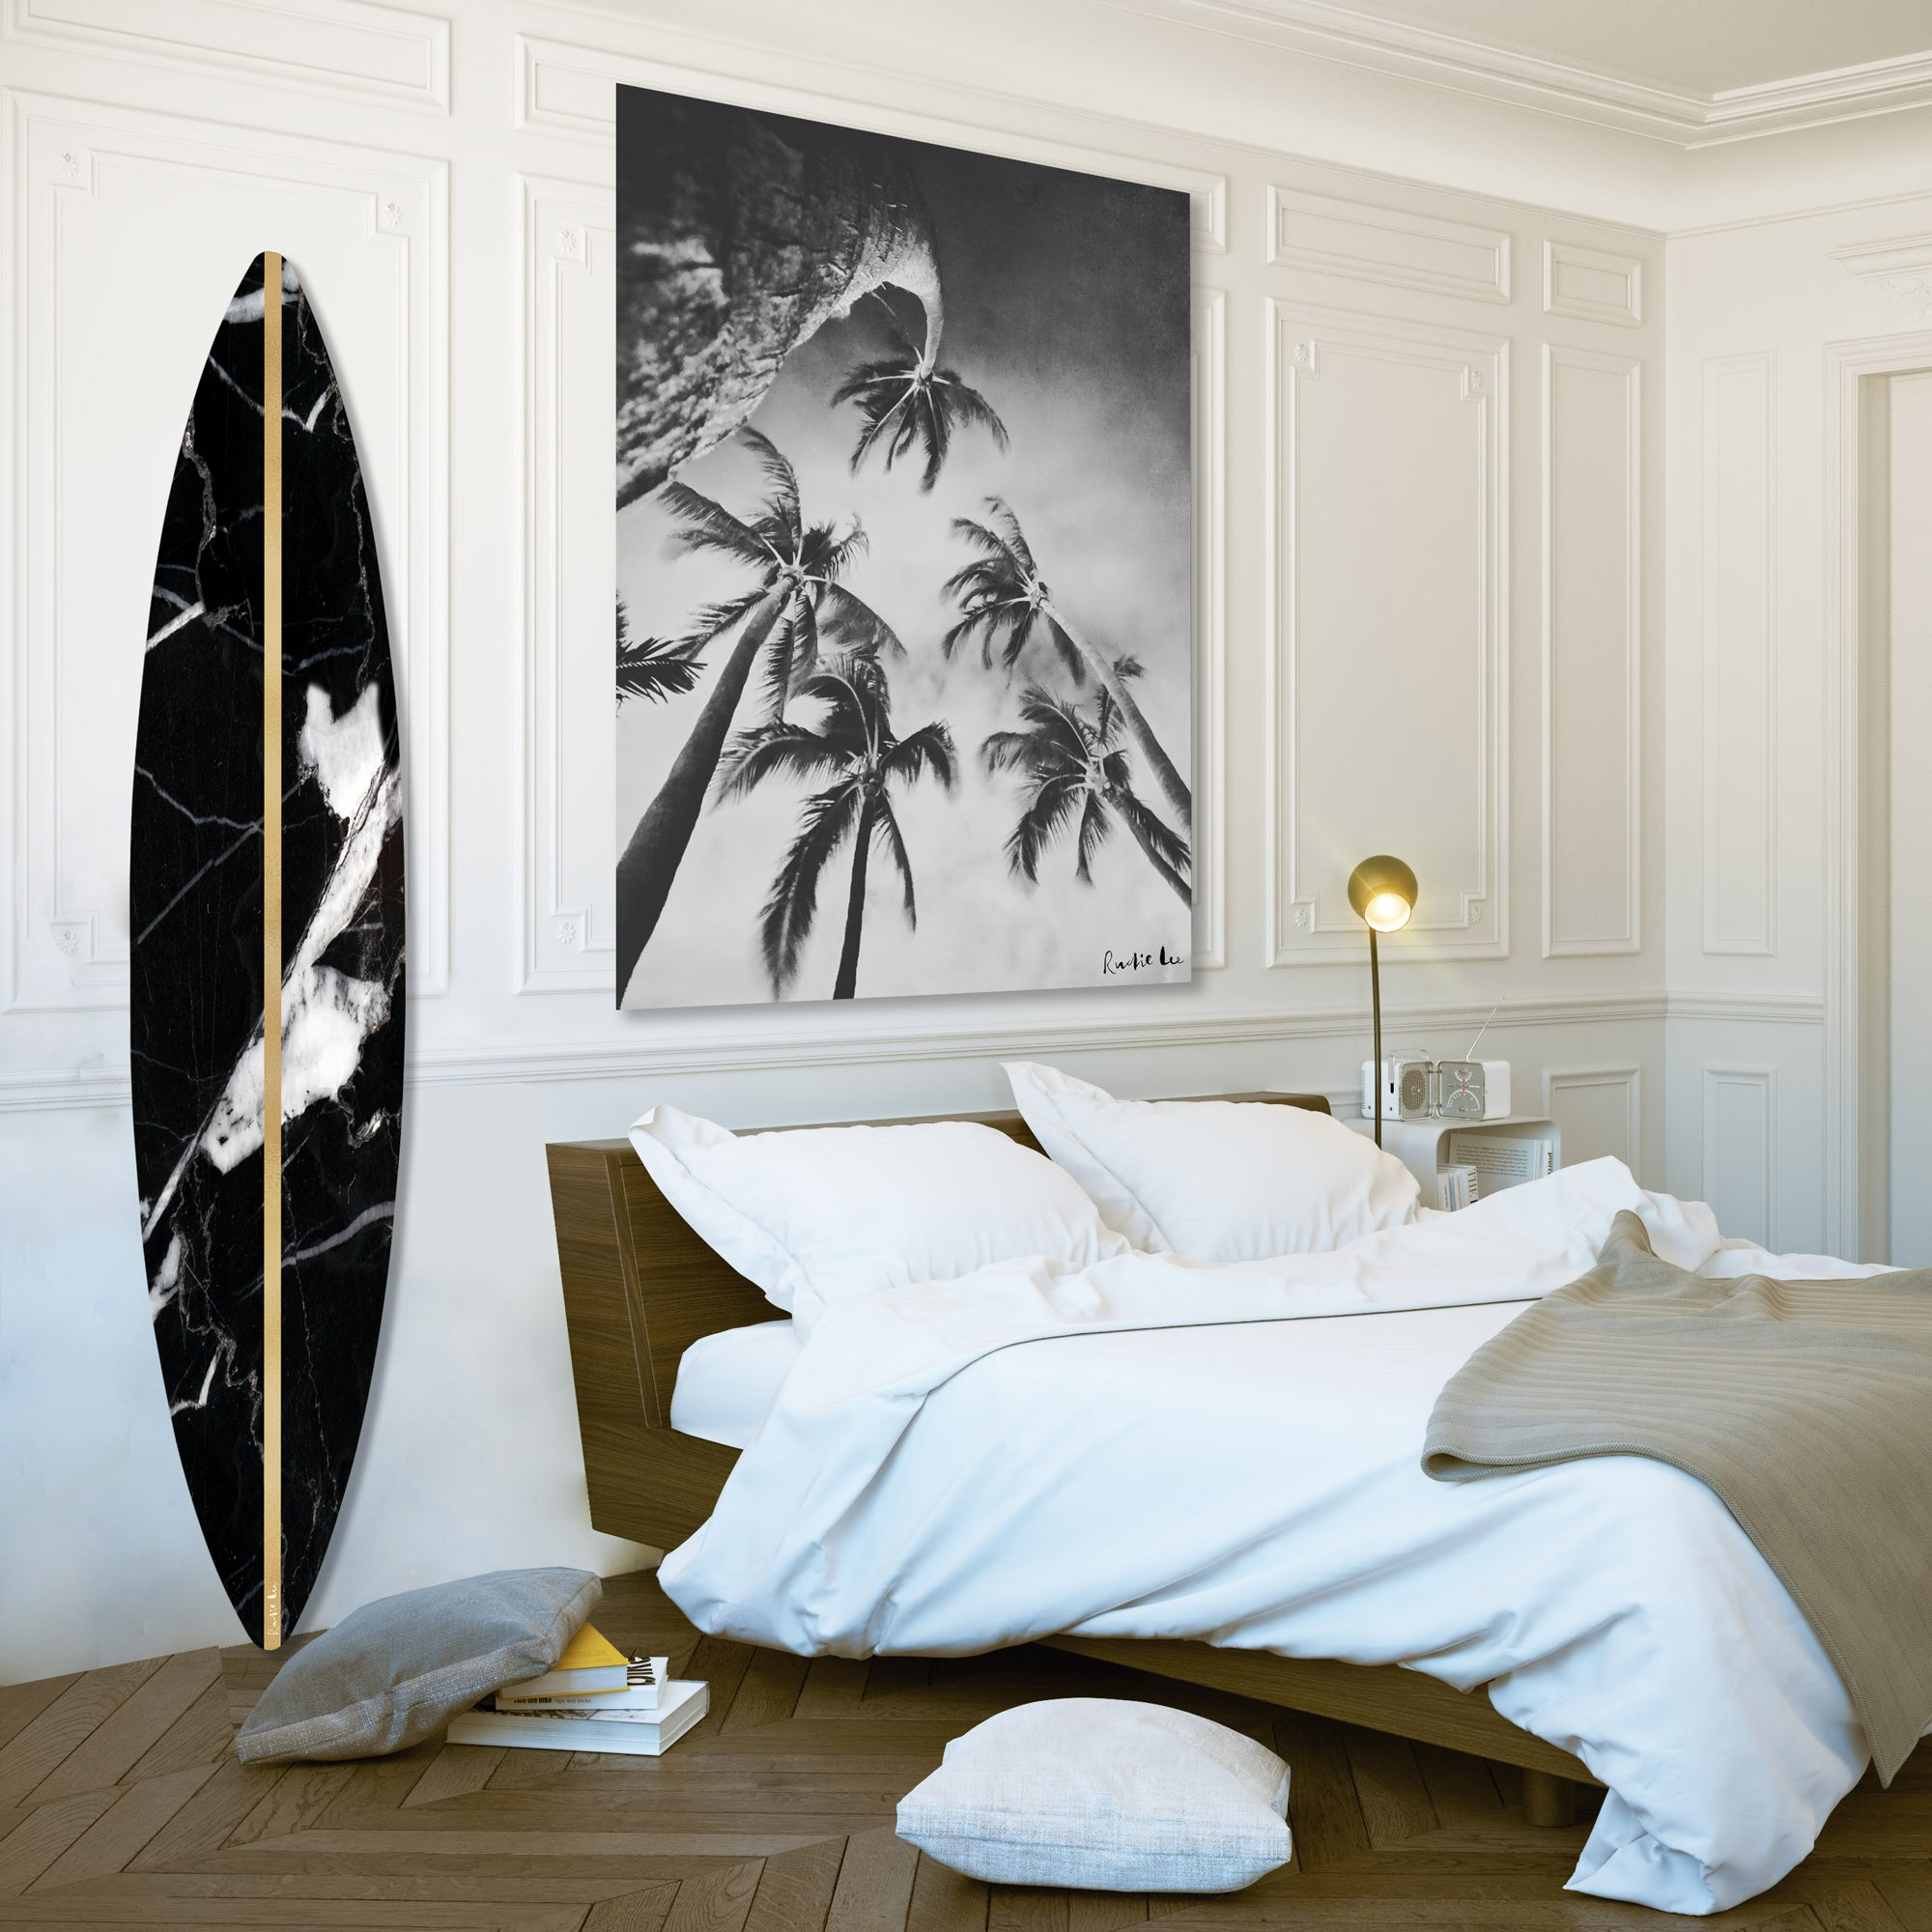 Surfboard (Black Stone) by Rudie Lee